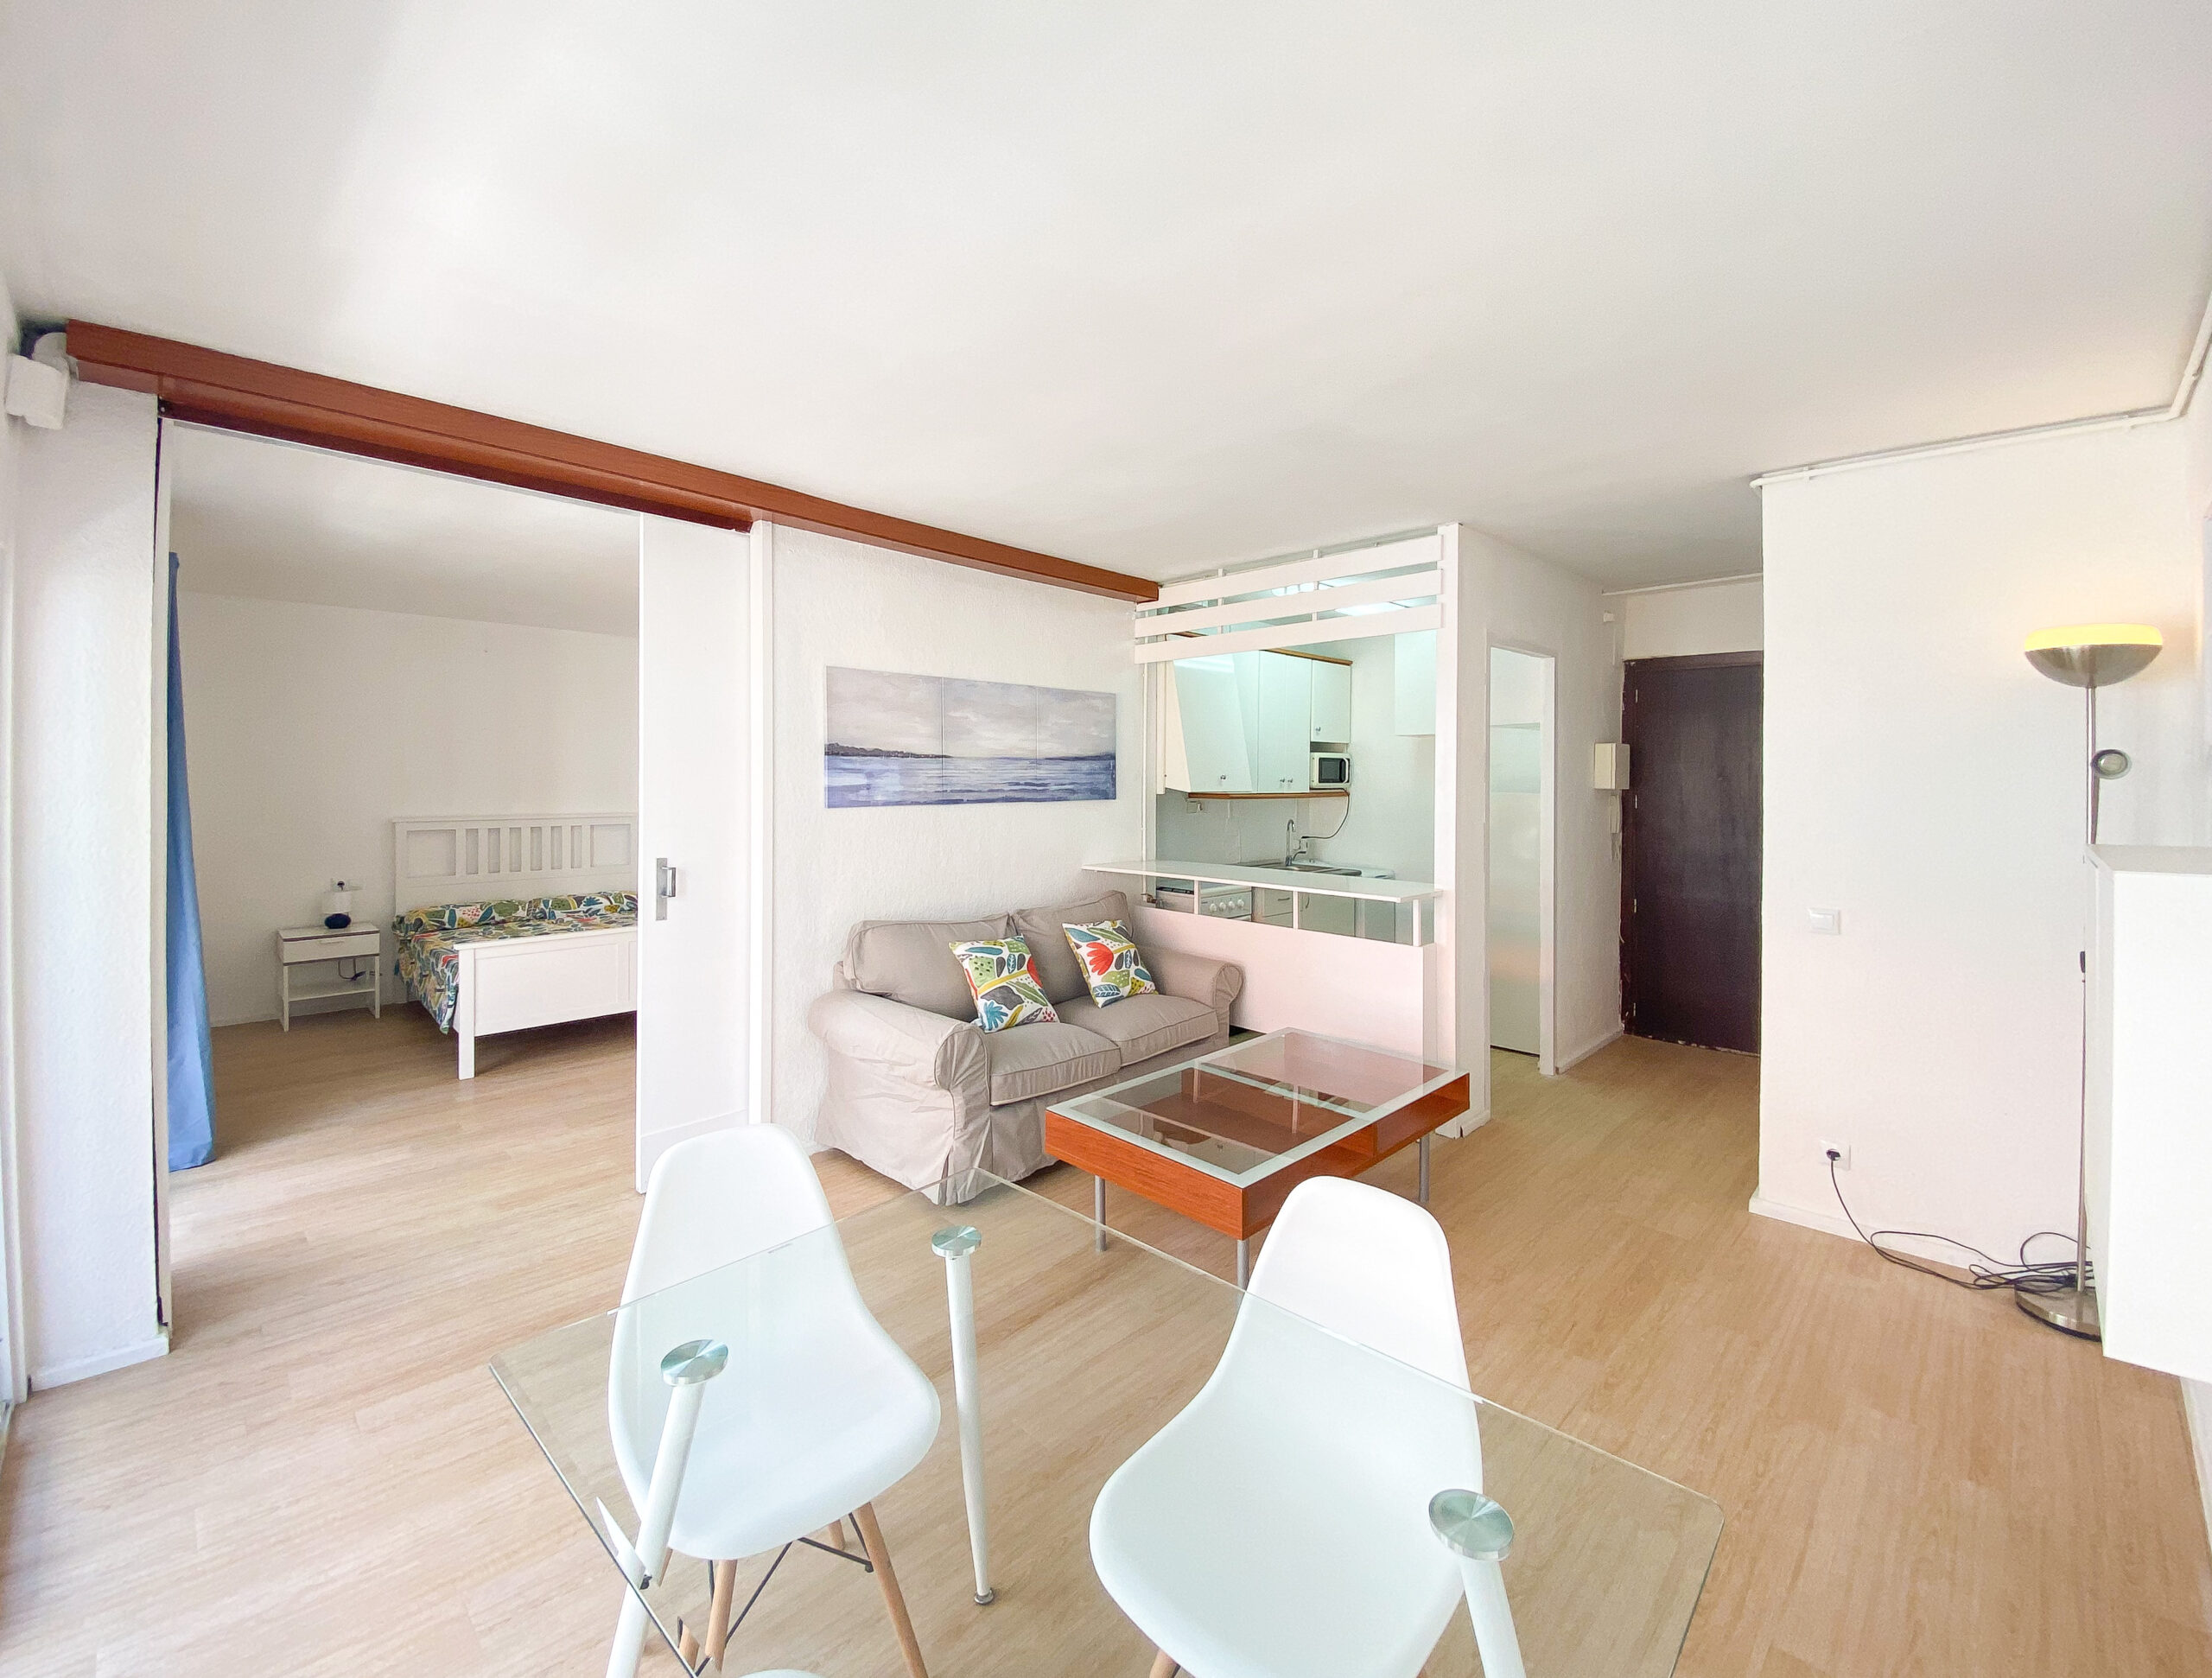 Wonderful opportunity of 1 bedroom apartment in one of the best streets of the center of Palma @ Mallorca